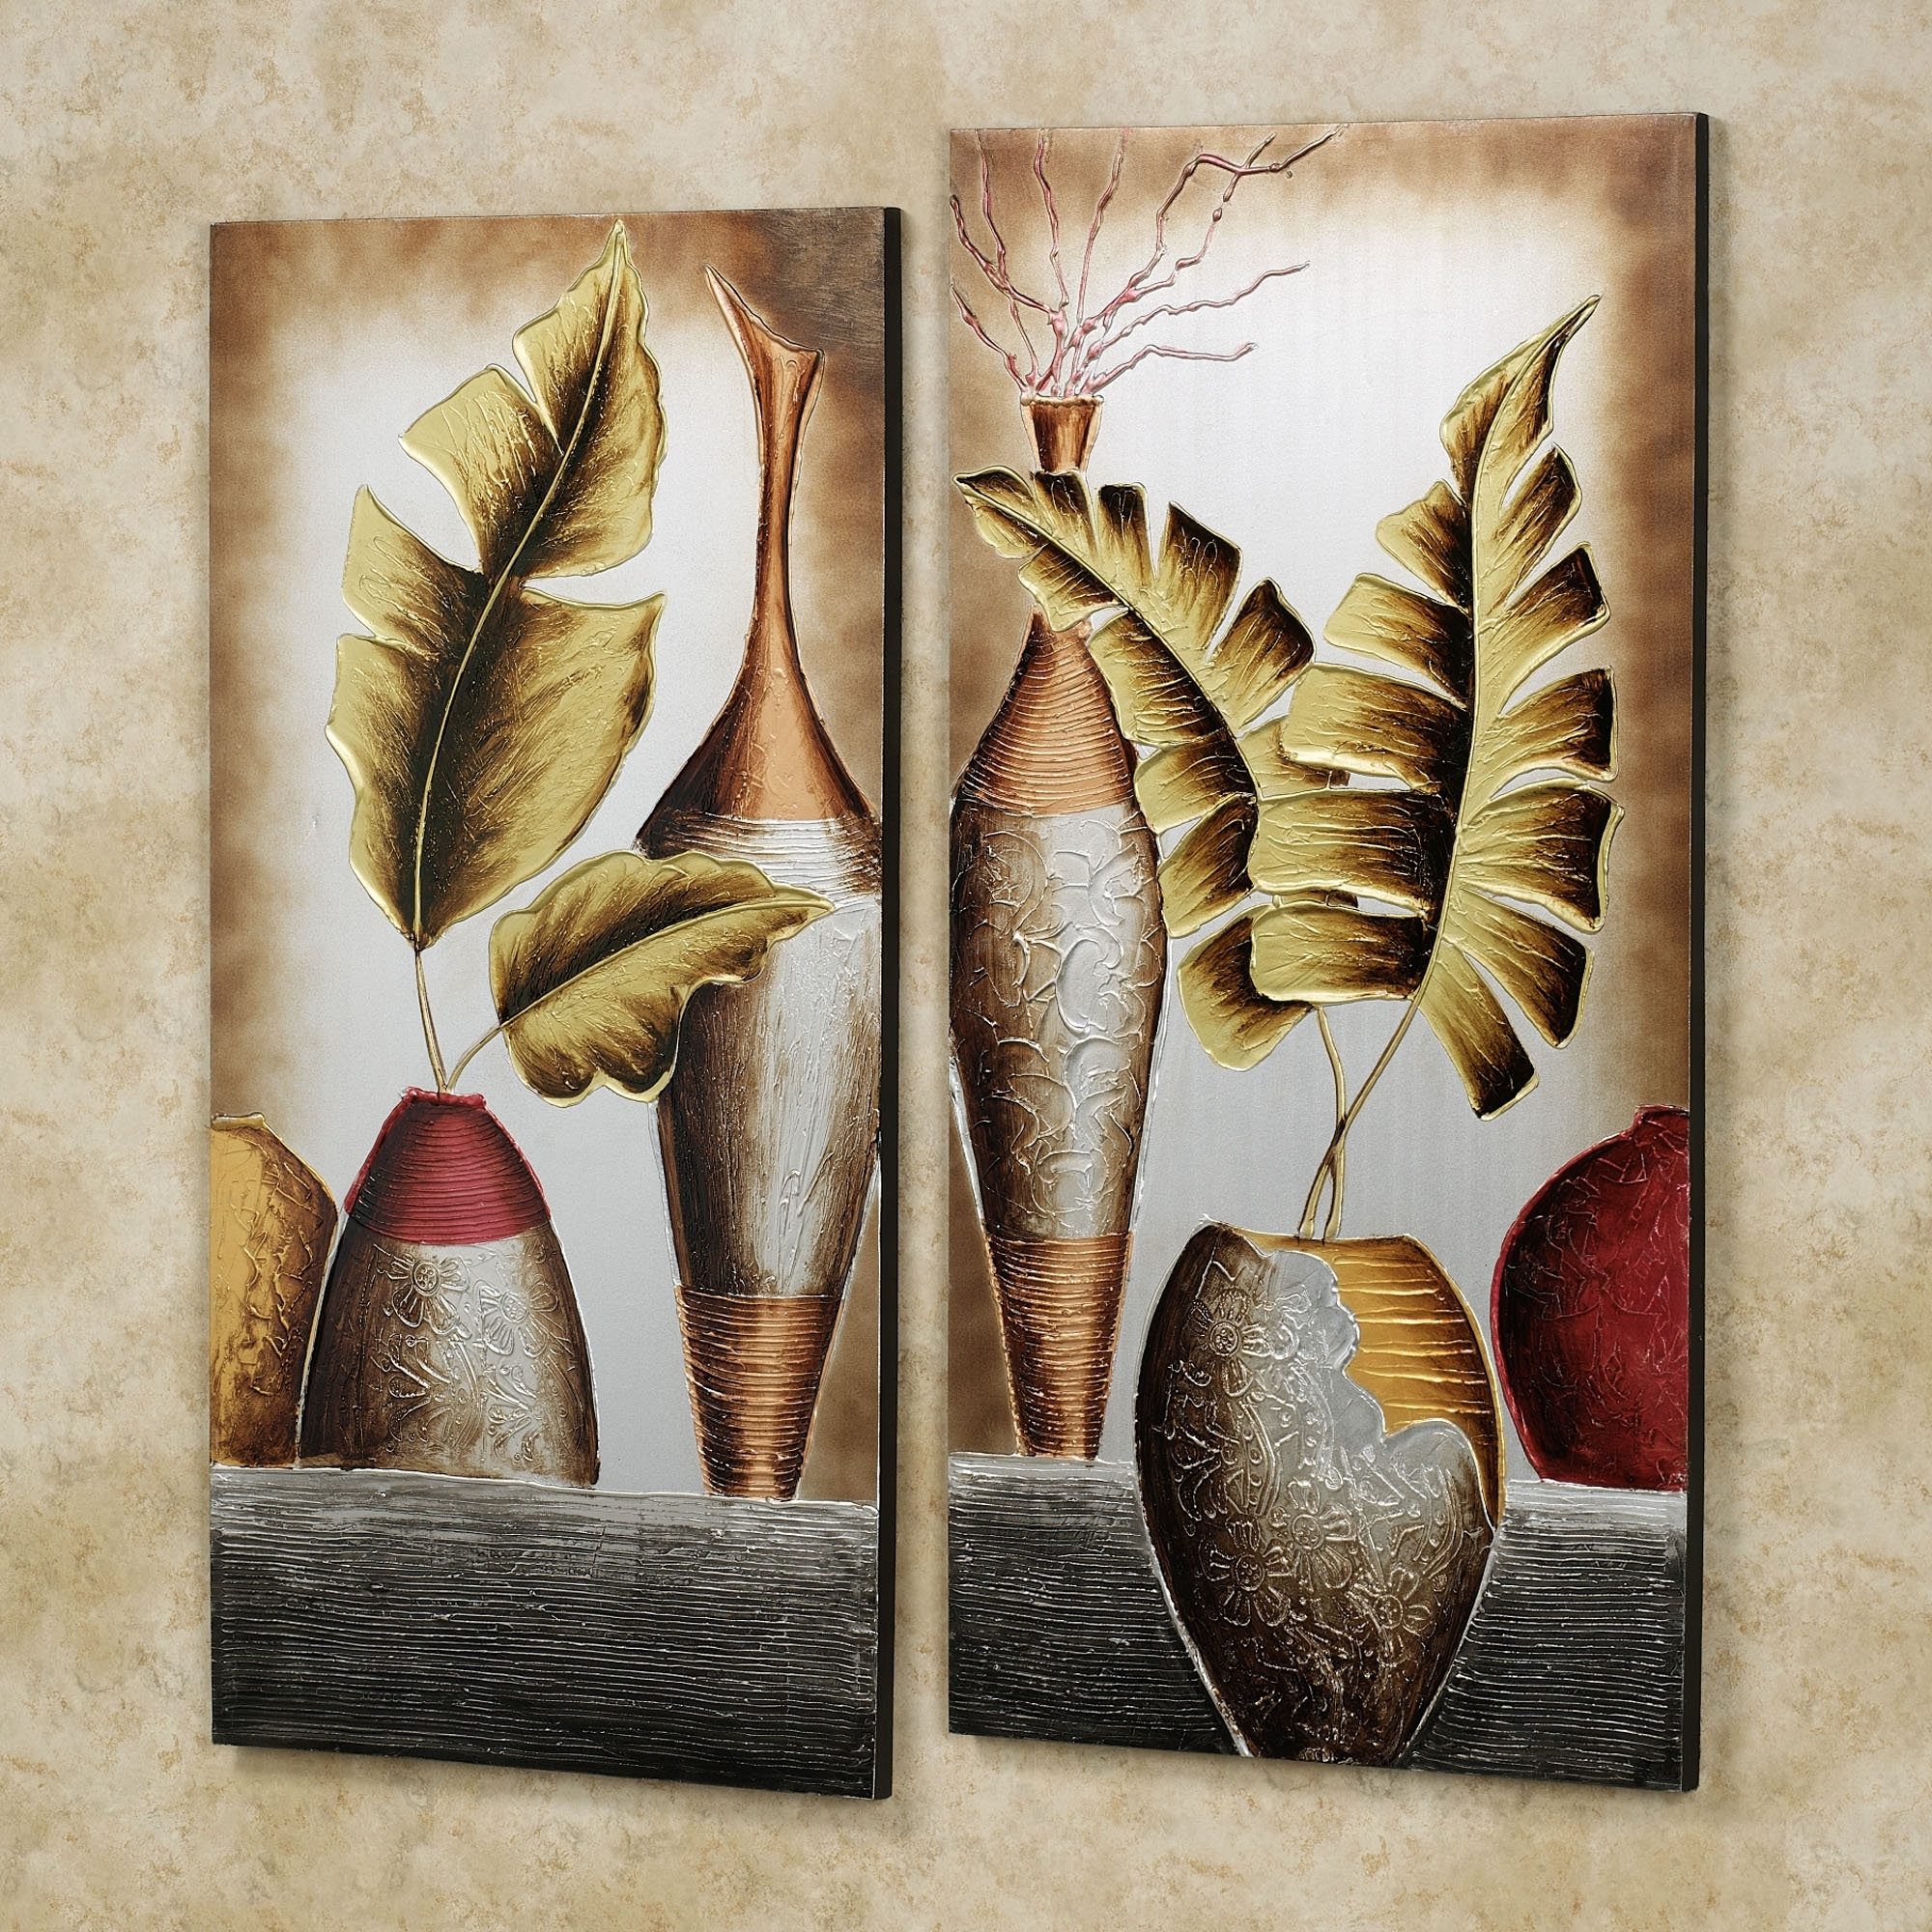 Leaves Canvas Wall Art Throughout Well Known Wall Art Designs: Wall Art Set Canvas Wall Art Set Unique Modern (View 11 of 15)